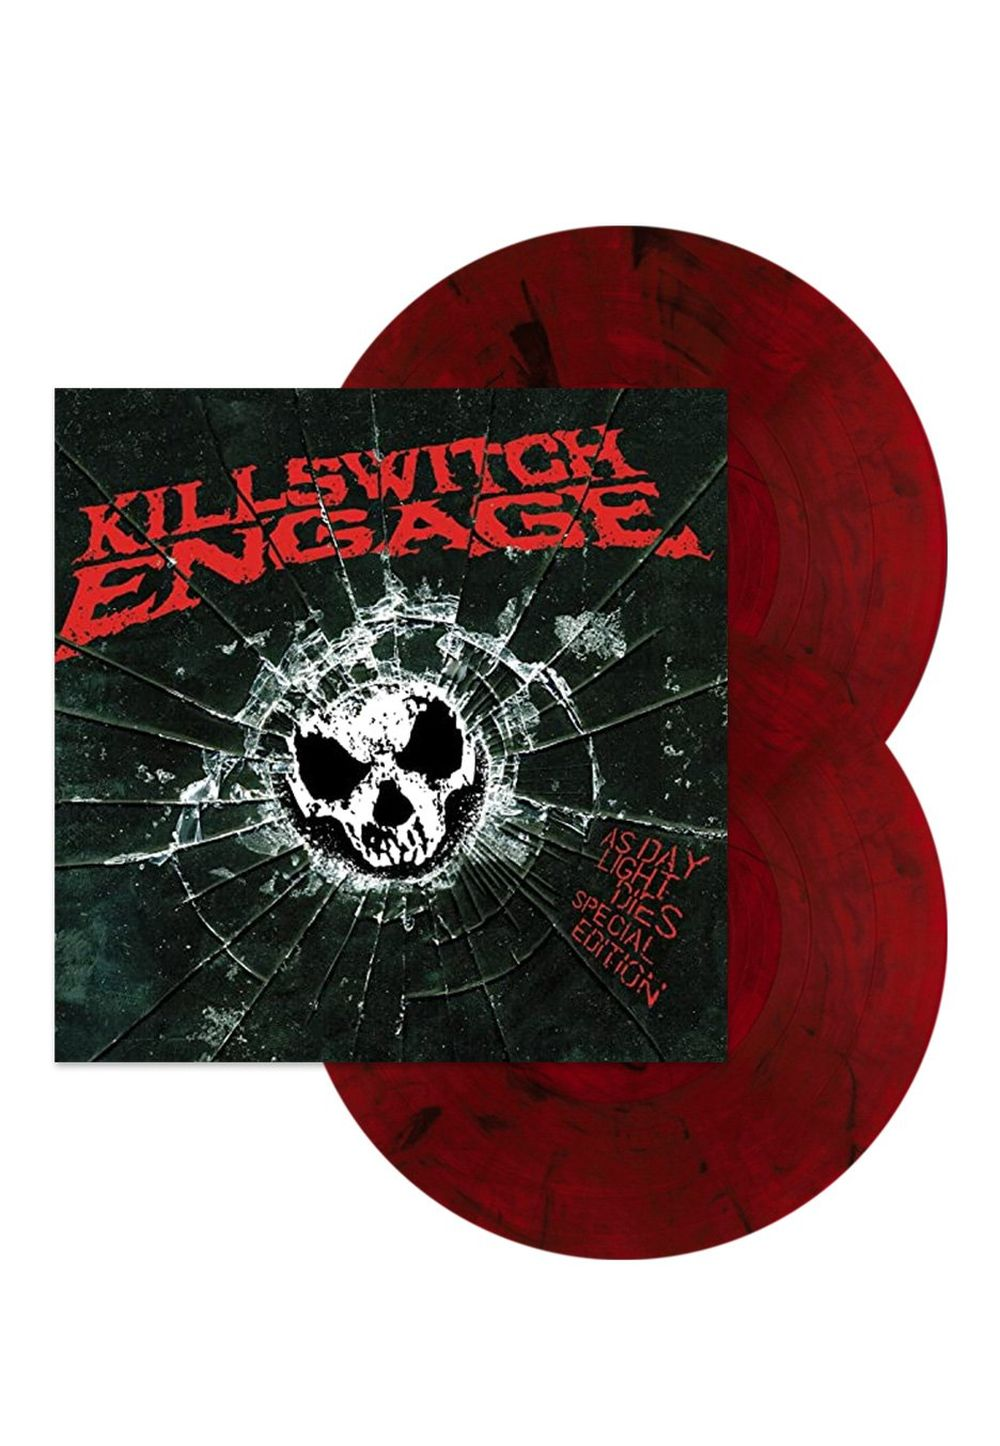 Killswitch Engage - As Daylight Dies (Deluxe Numbered 2LP Red & Black Vinyl)  - Vinyl - New